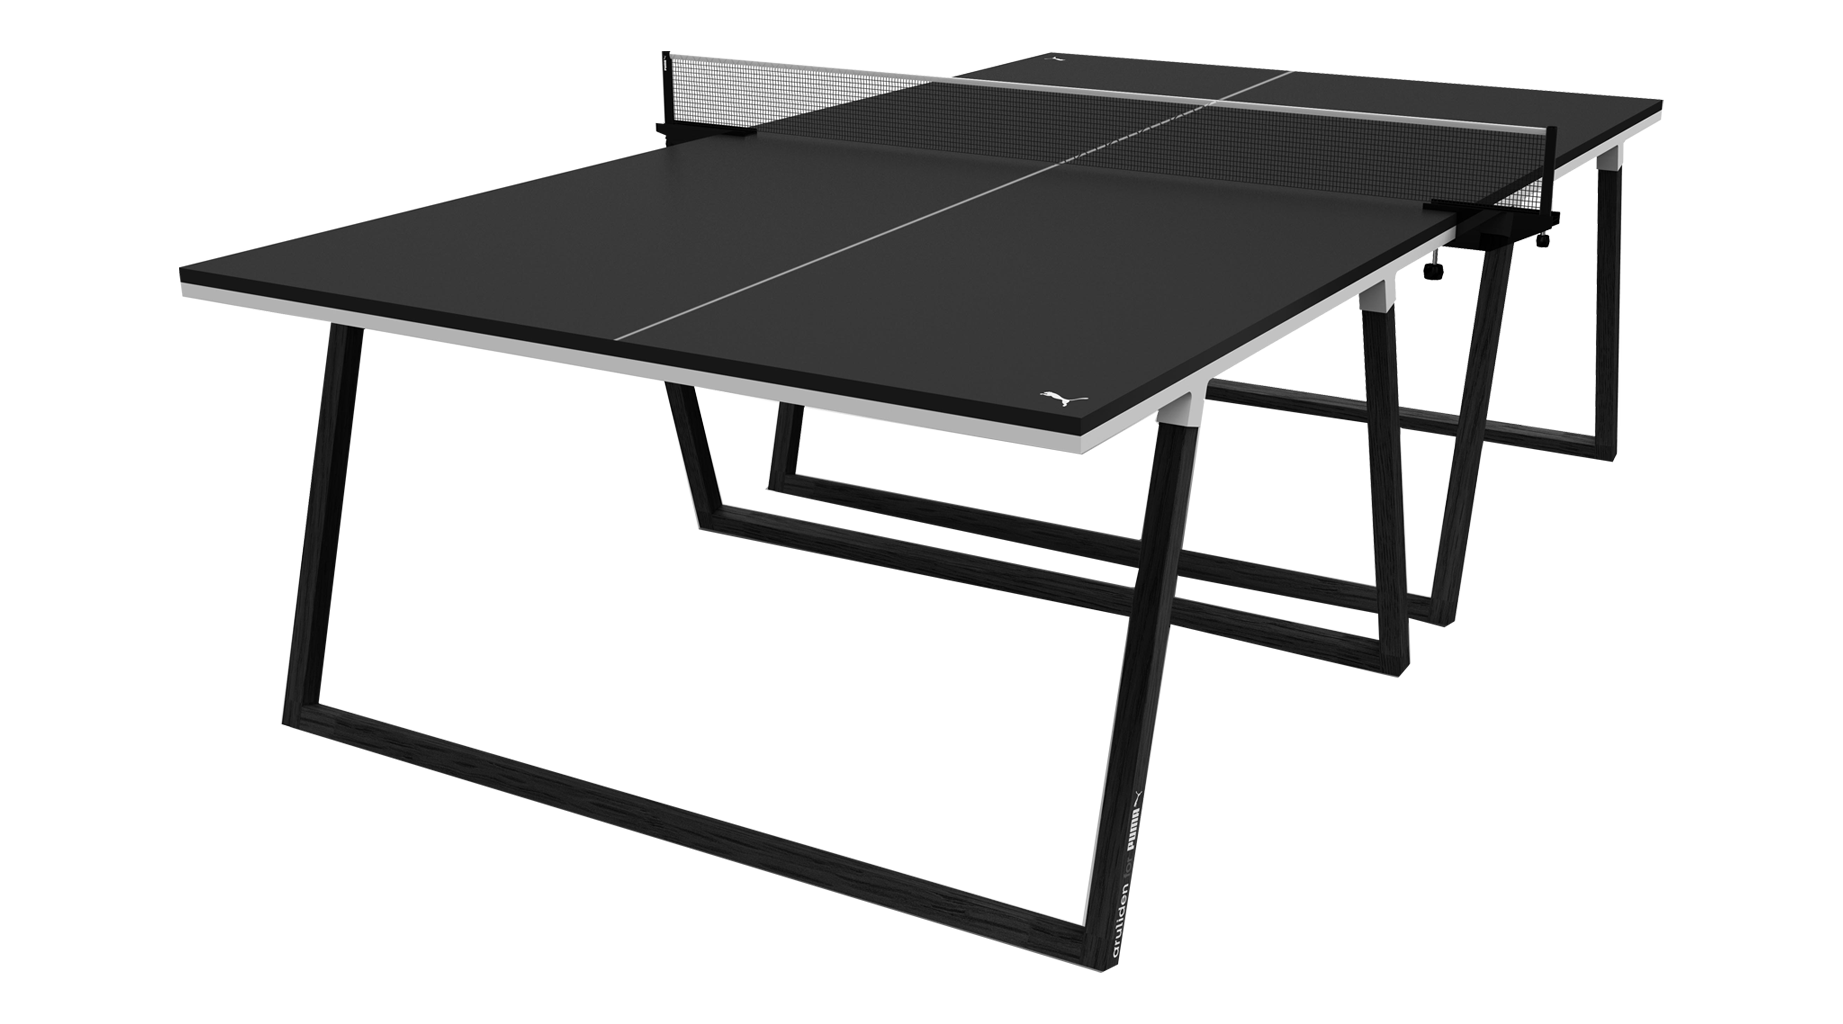 table tennis ping pong puma table tennis table l. Black Bedroom Furniture Sets. Home Design Ideas